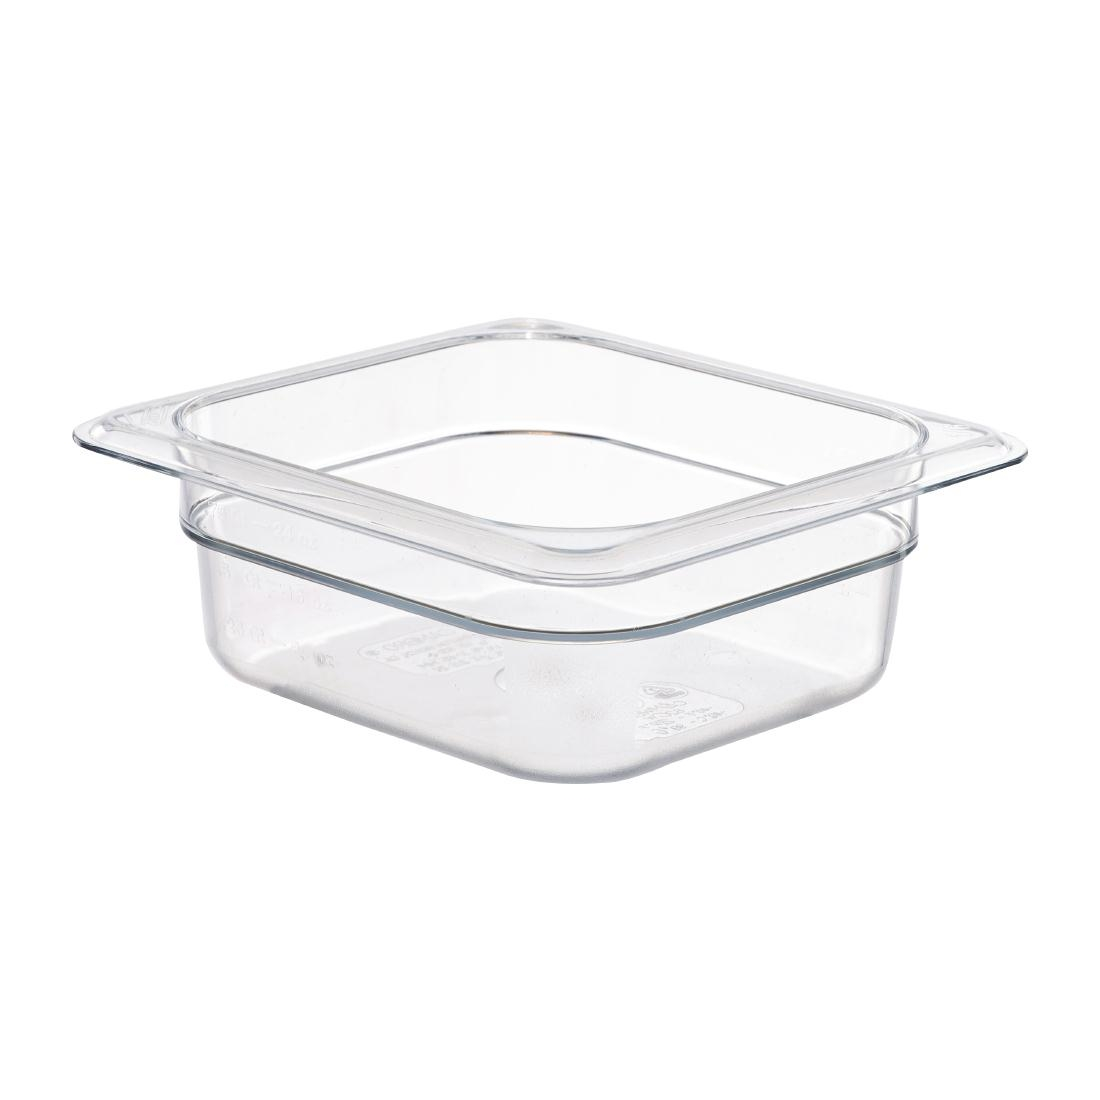 Cambro Polycarbonate 1/6 Gastronorm Pan 65mm